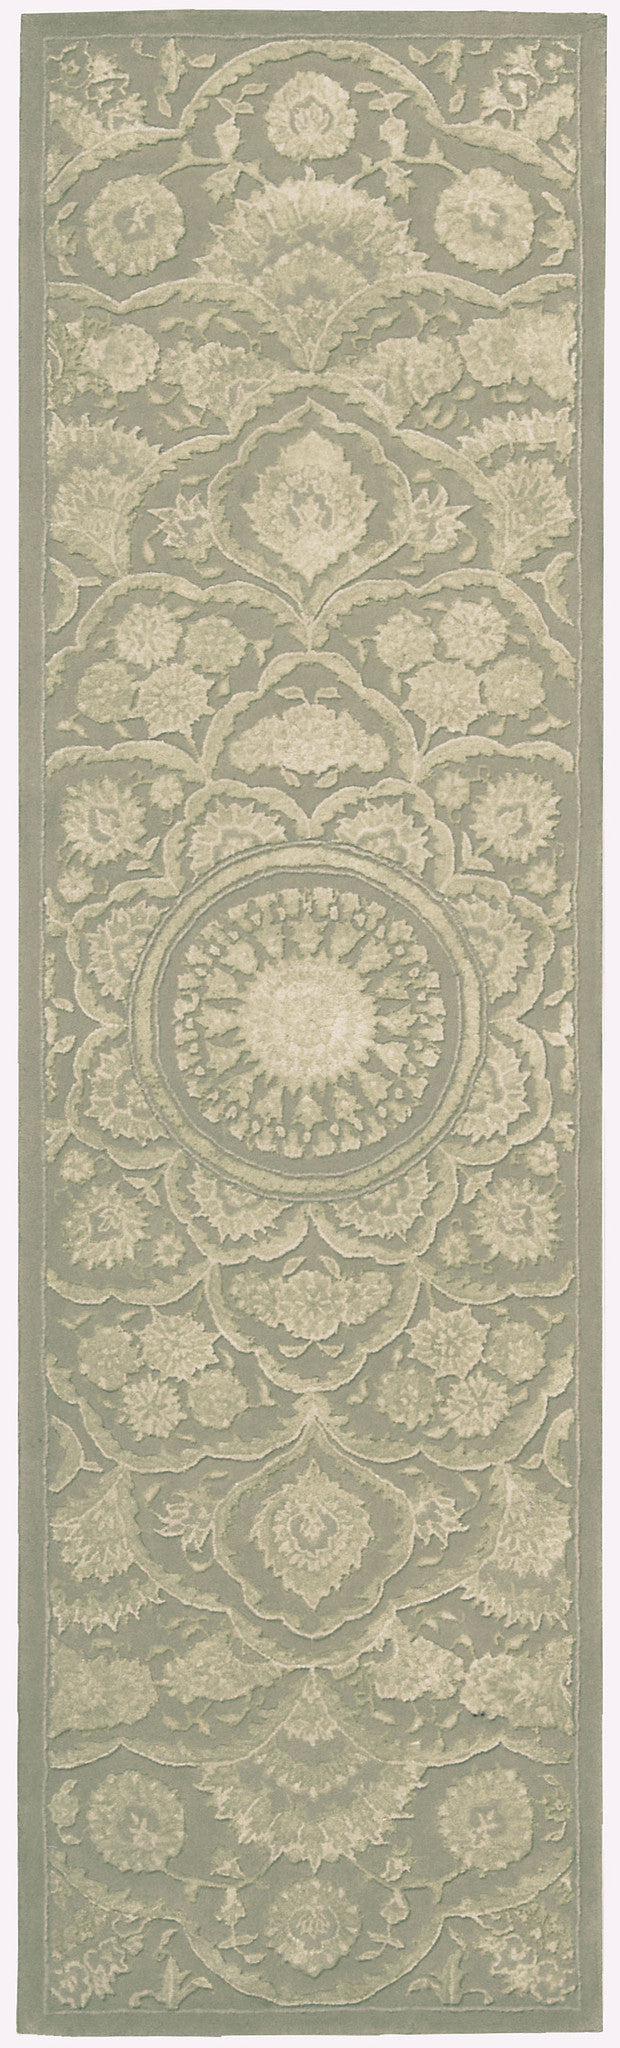 Nourison Regal Green Area Rug REG02 GRE